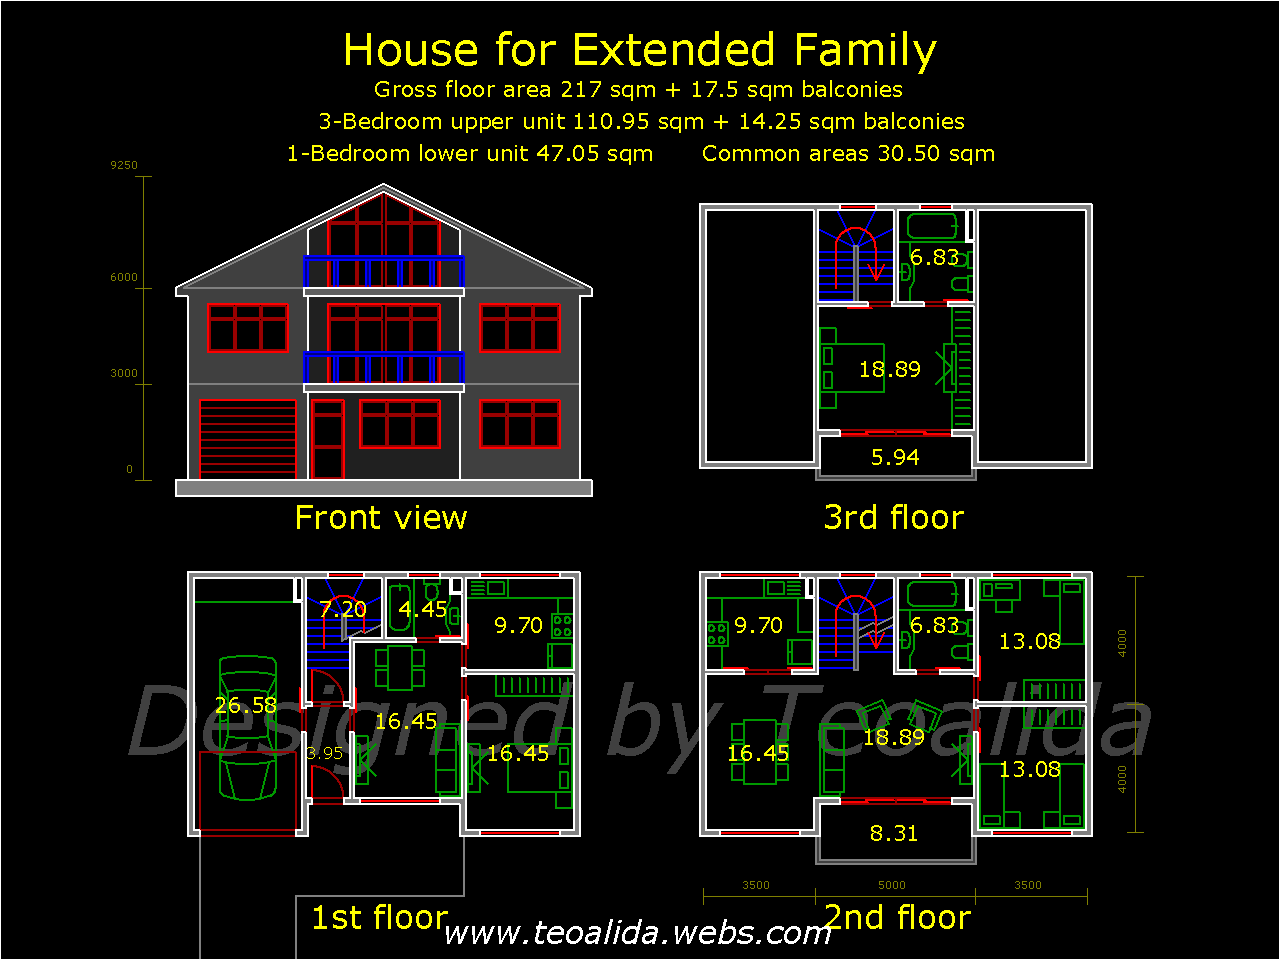 House for extended family floorplan